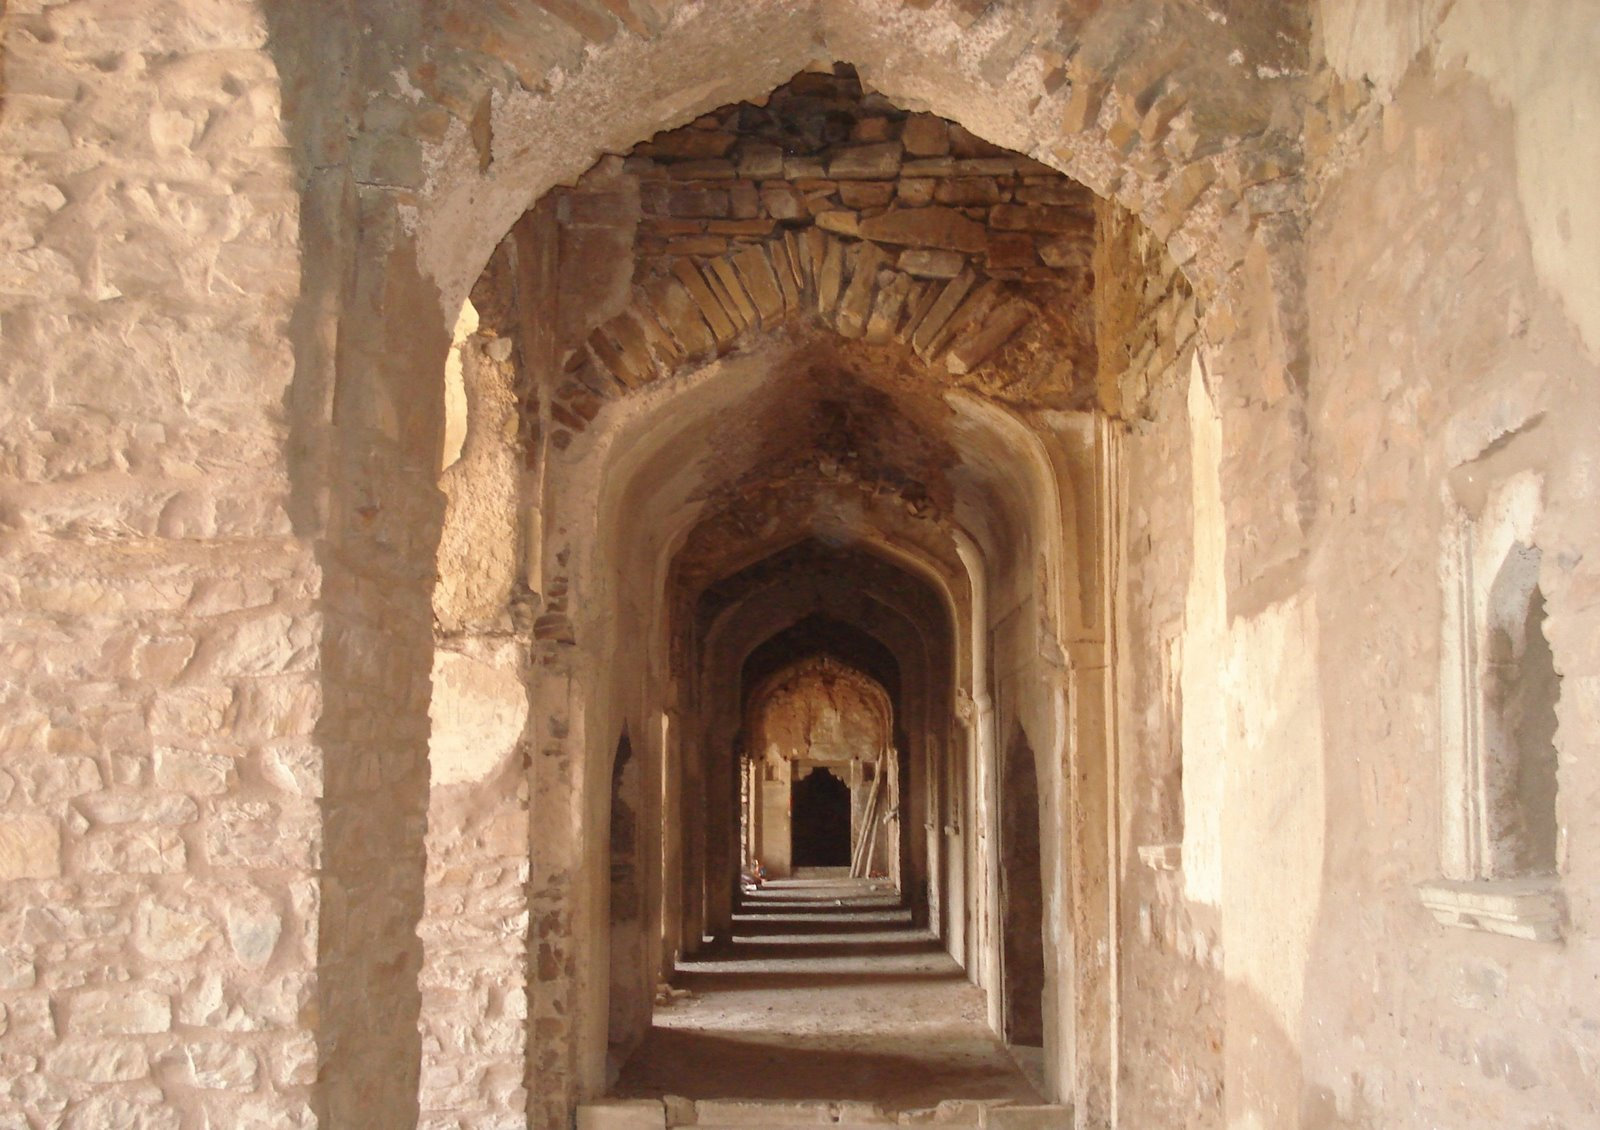 Trip to Bhangarh Fort - the Haunted City of Rajasthan